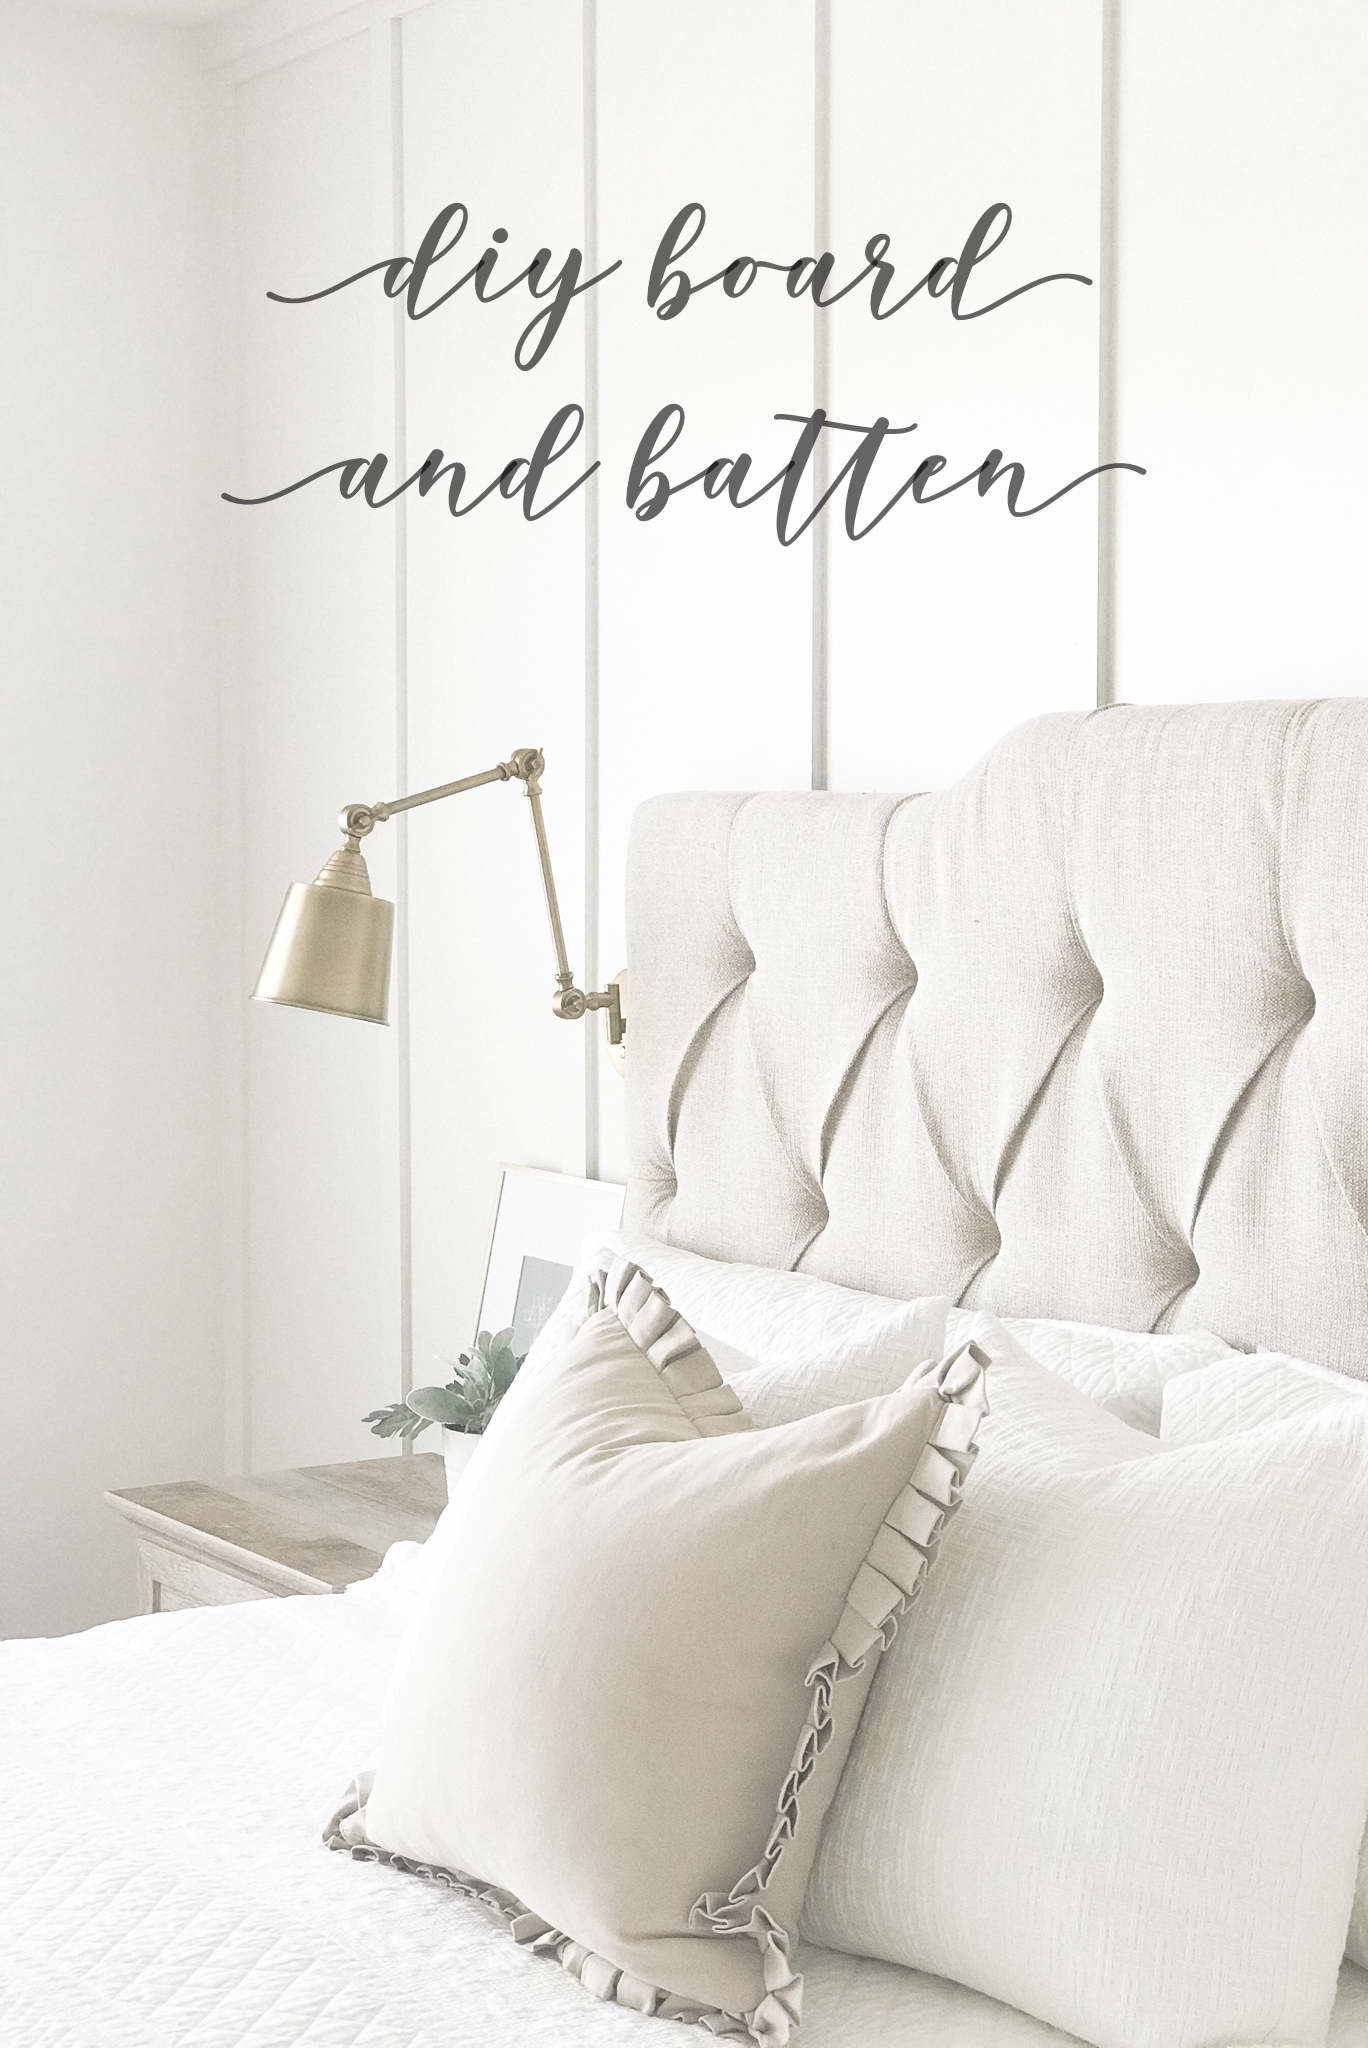 Board And Batten Accent Wall Affordable Bedroom Furniture Bedroom Furniture Headboards Farmhouse Bedroom Furniture